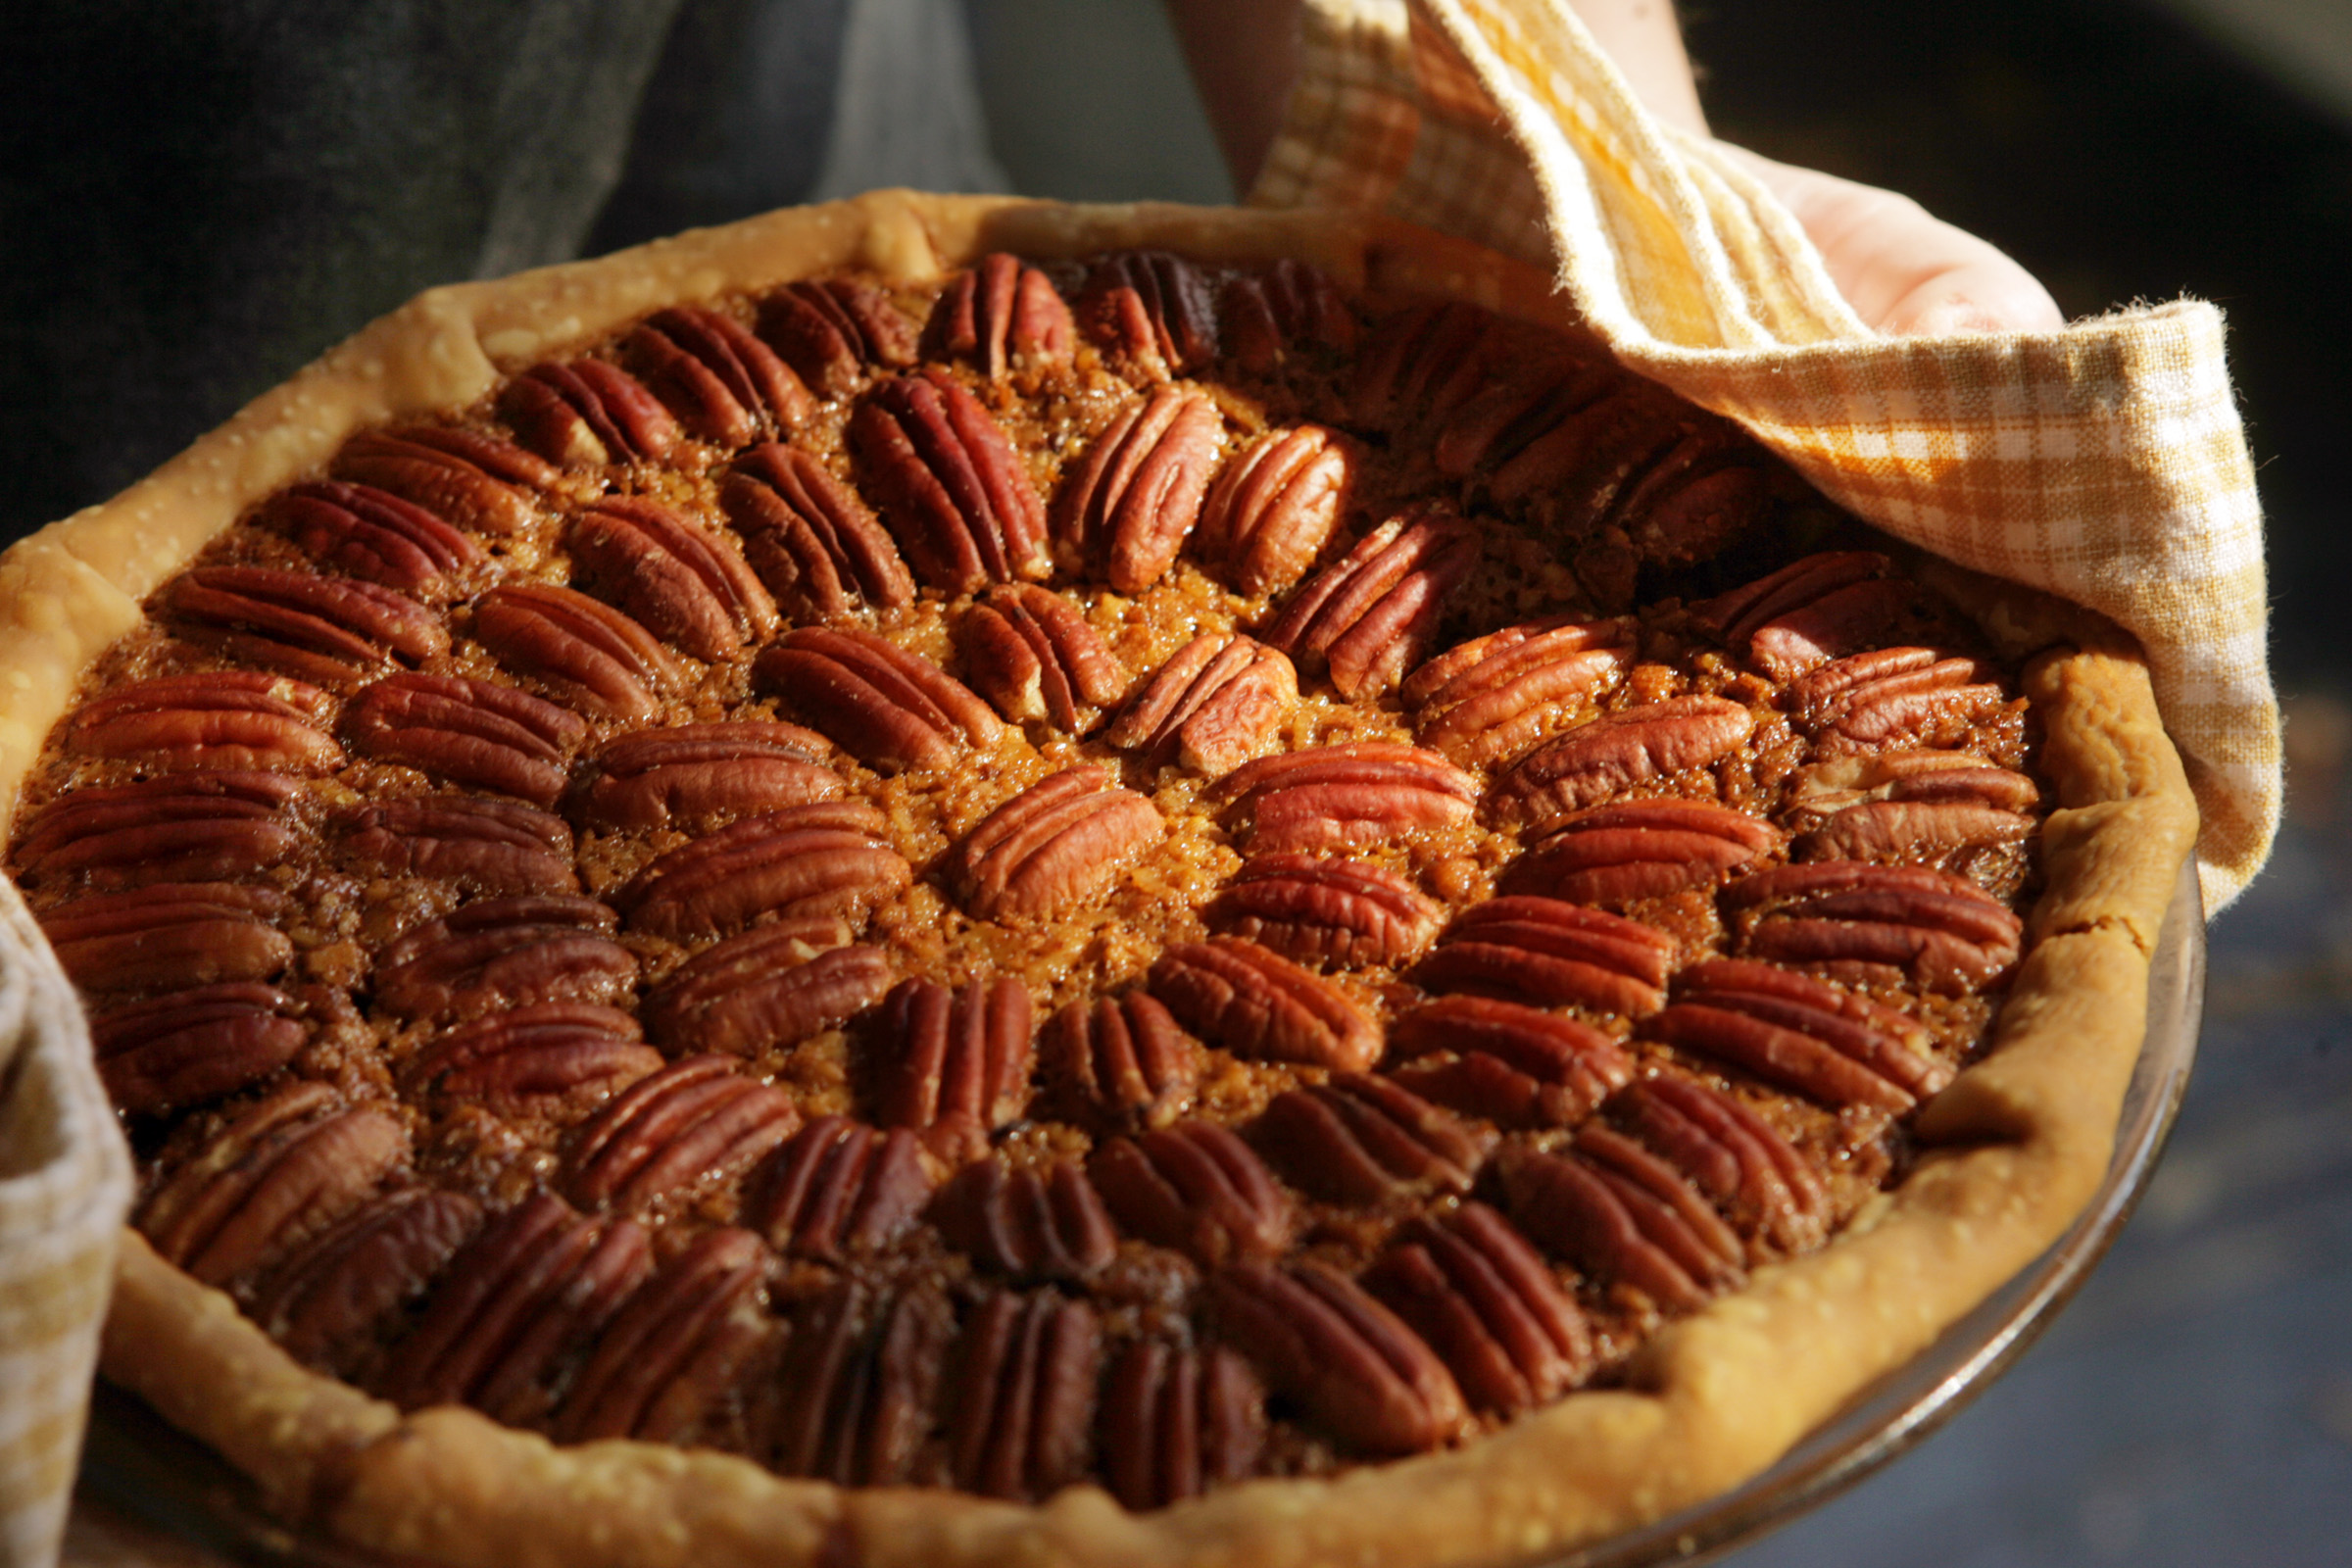 Is it OK to carry that Thanksgiving pie on the plane?